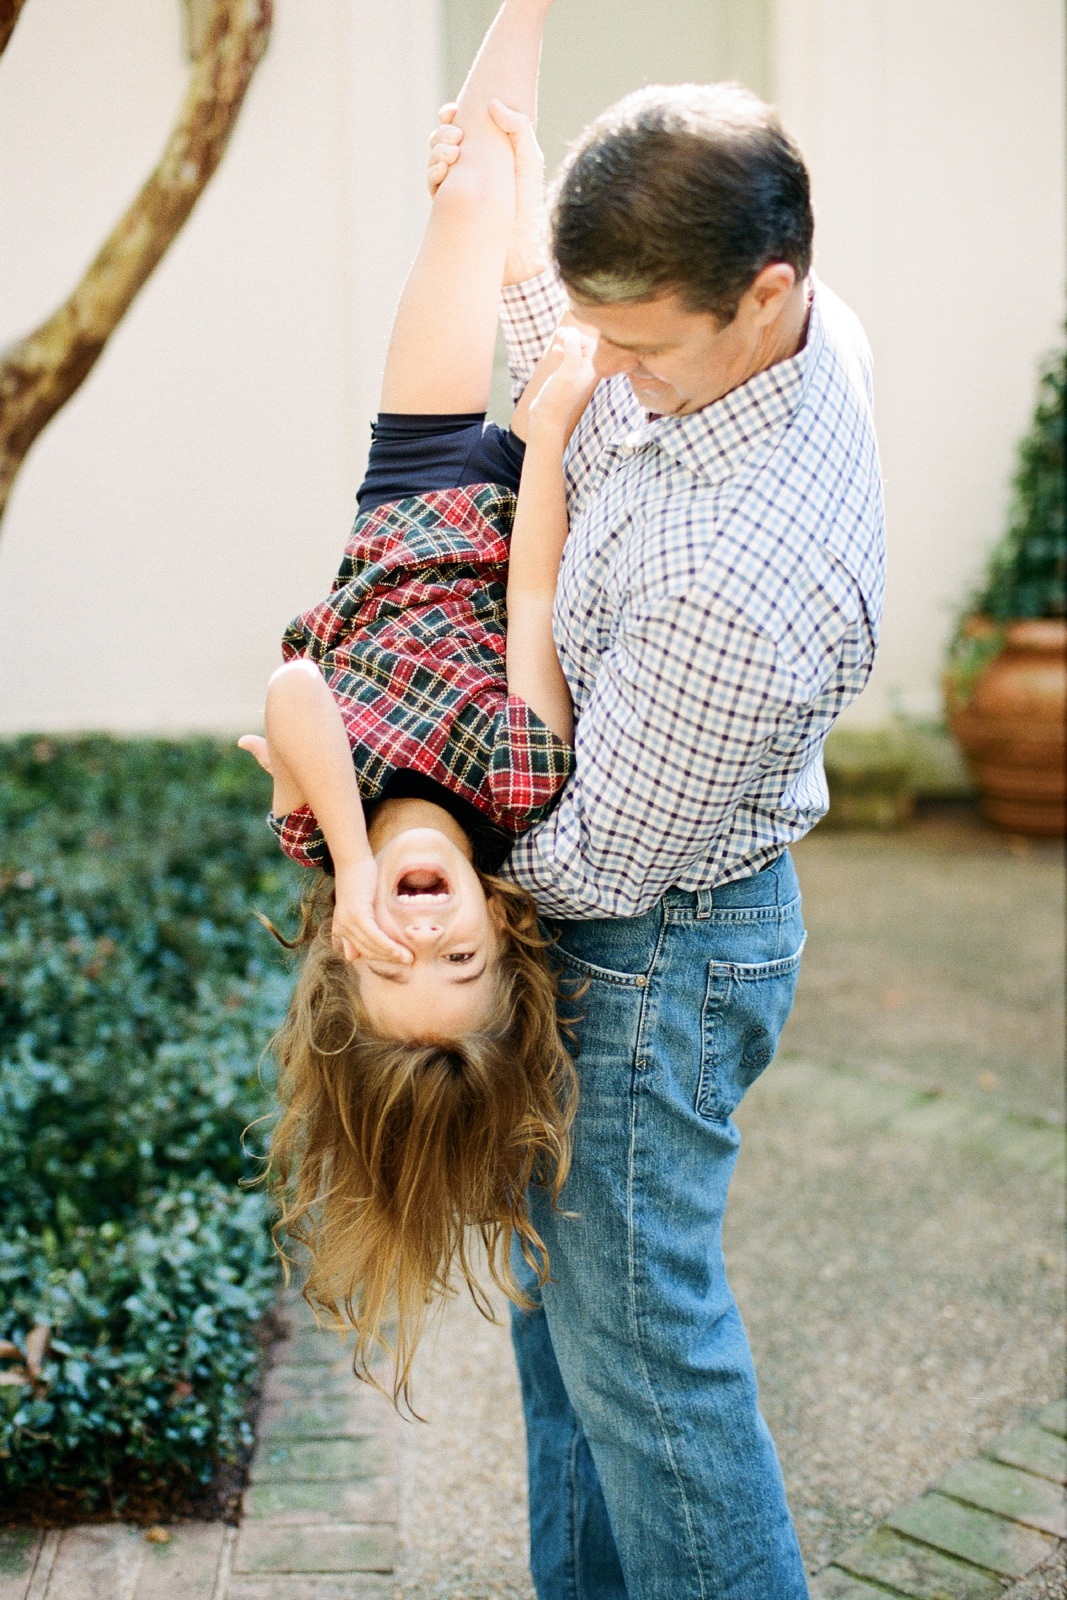 tallahassee_family_photographer_tallahassee_florida_shannon_griffin_0011.jpg